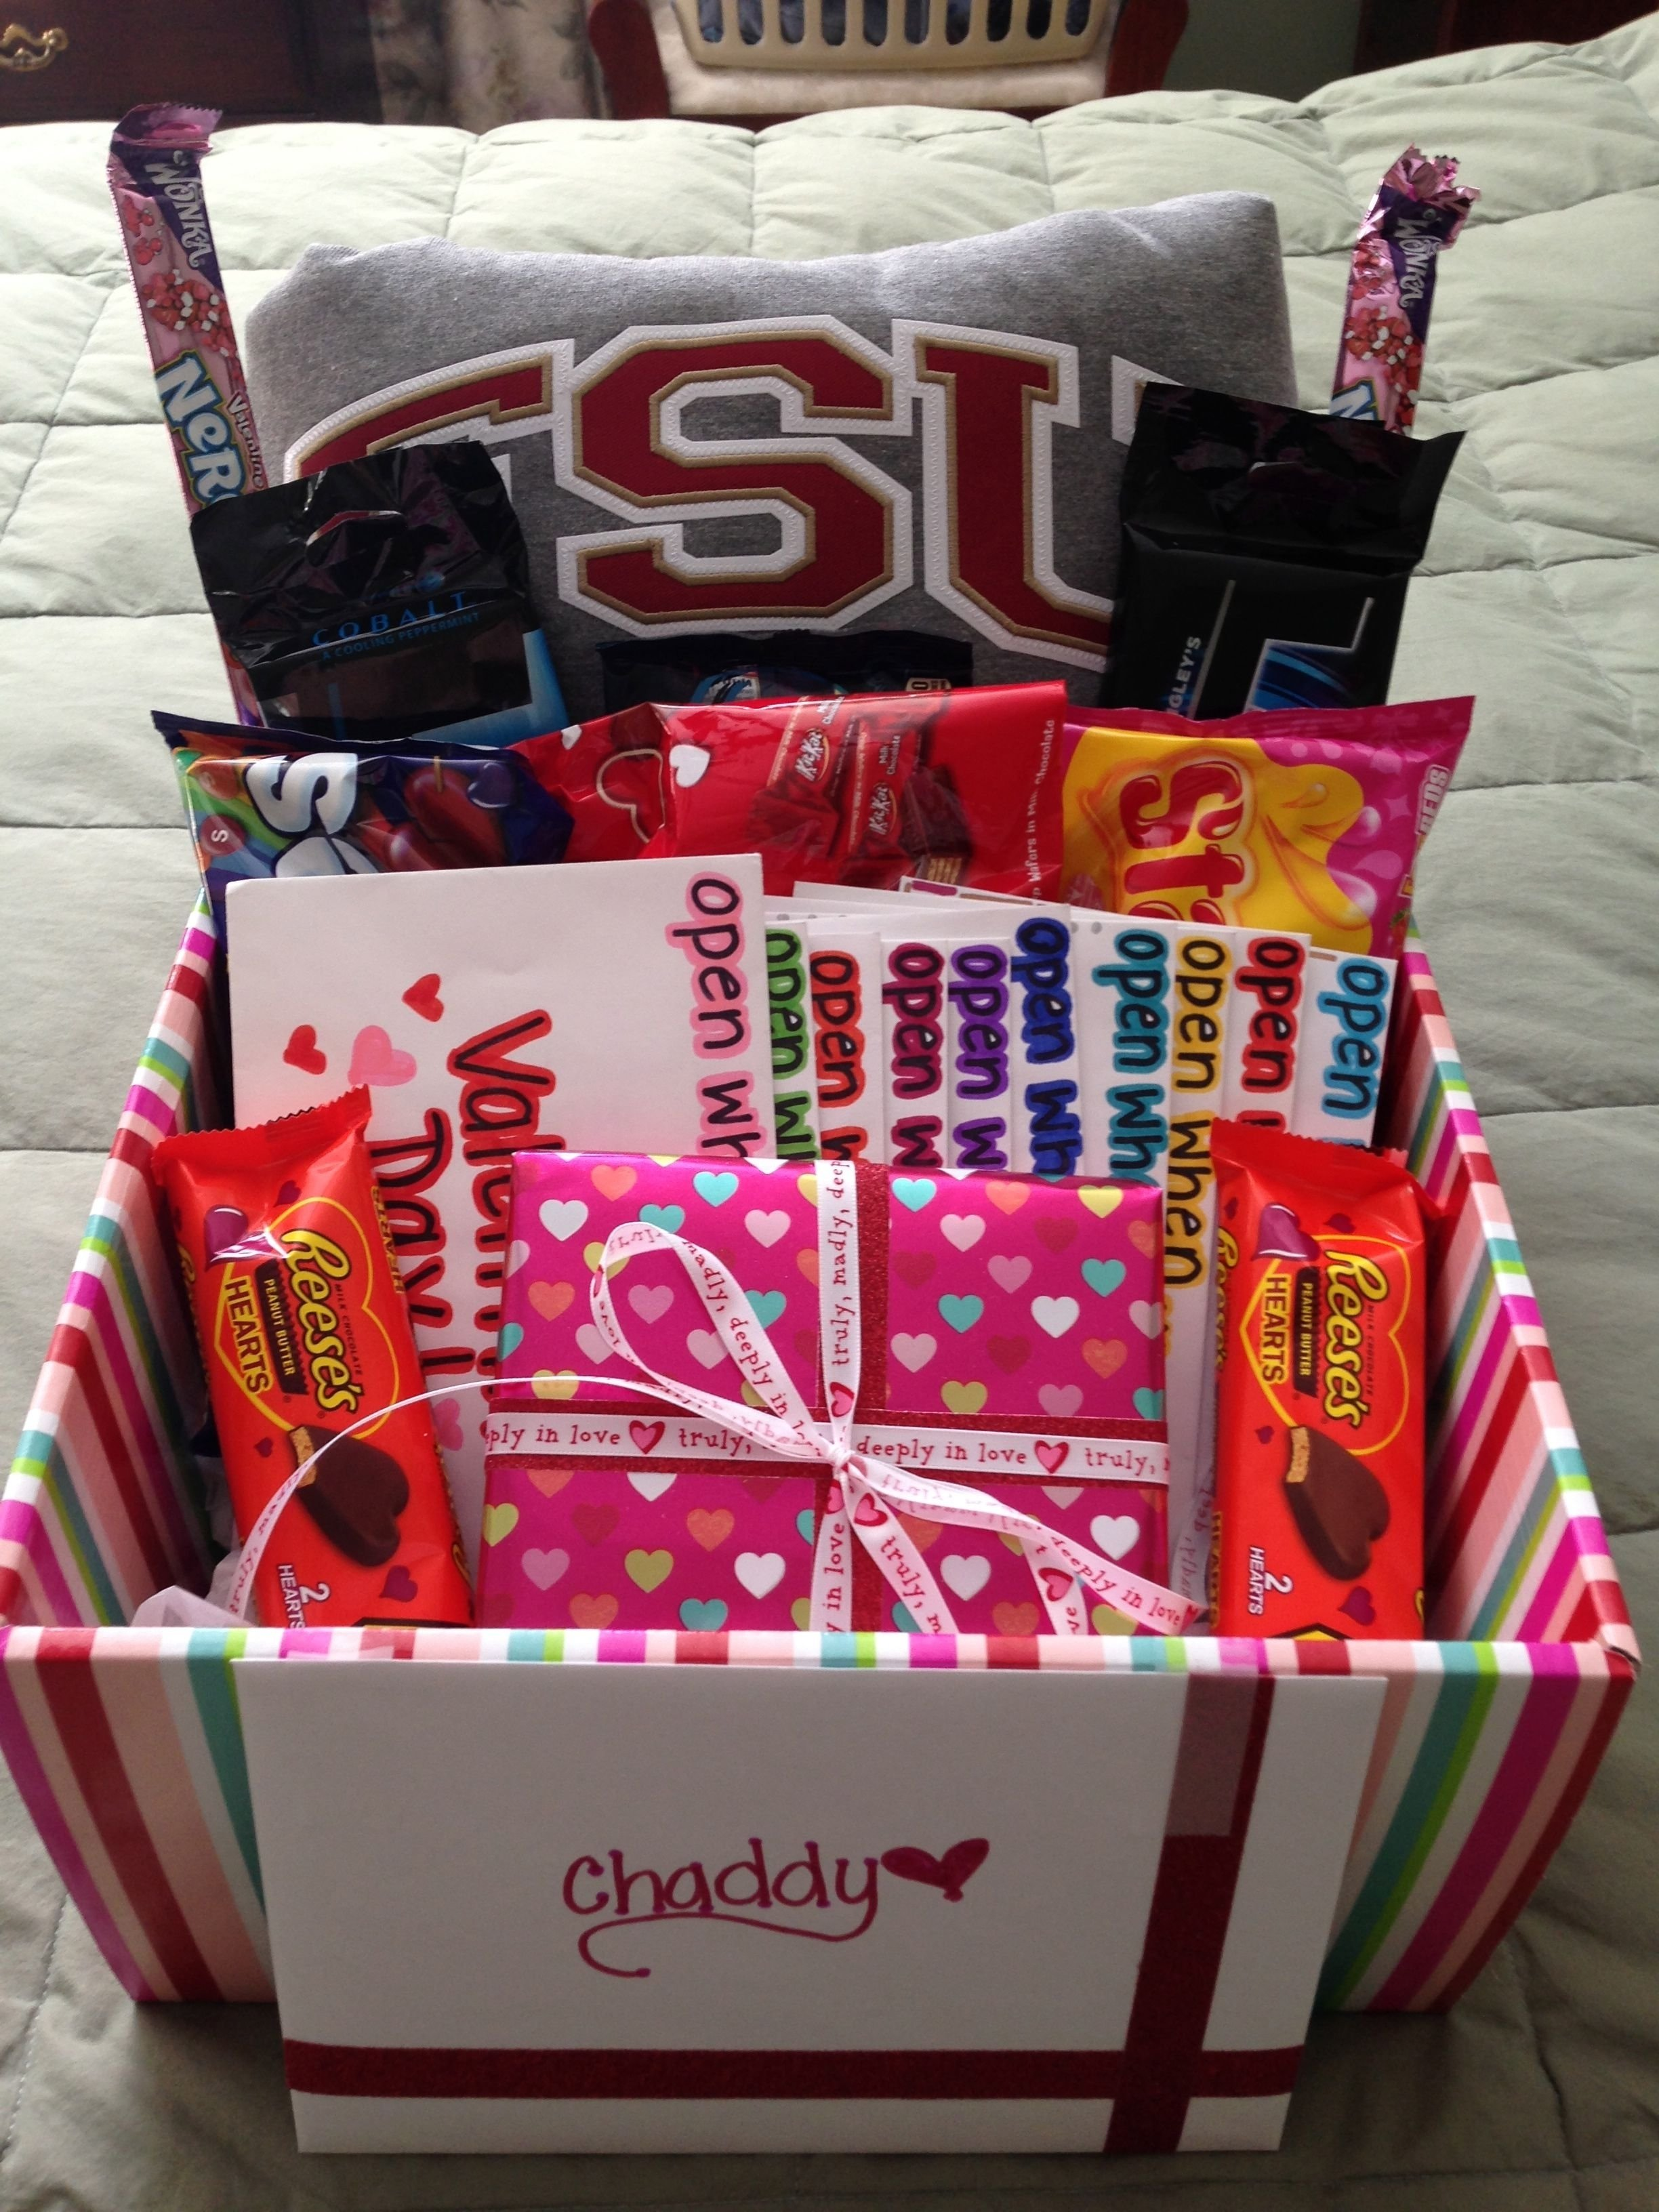 10 Perfect Valentines Gifts For Him Ideas valentines day gift for him valentines day gift basket open when 2021